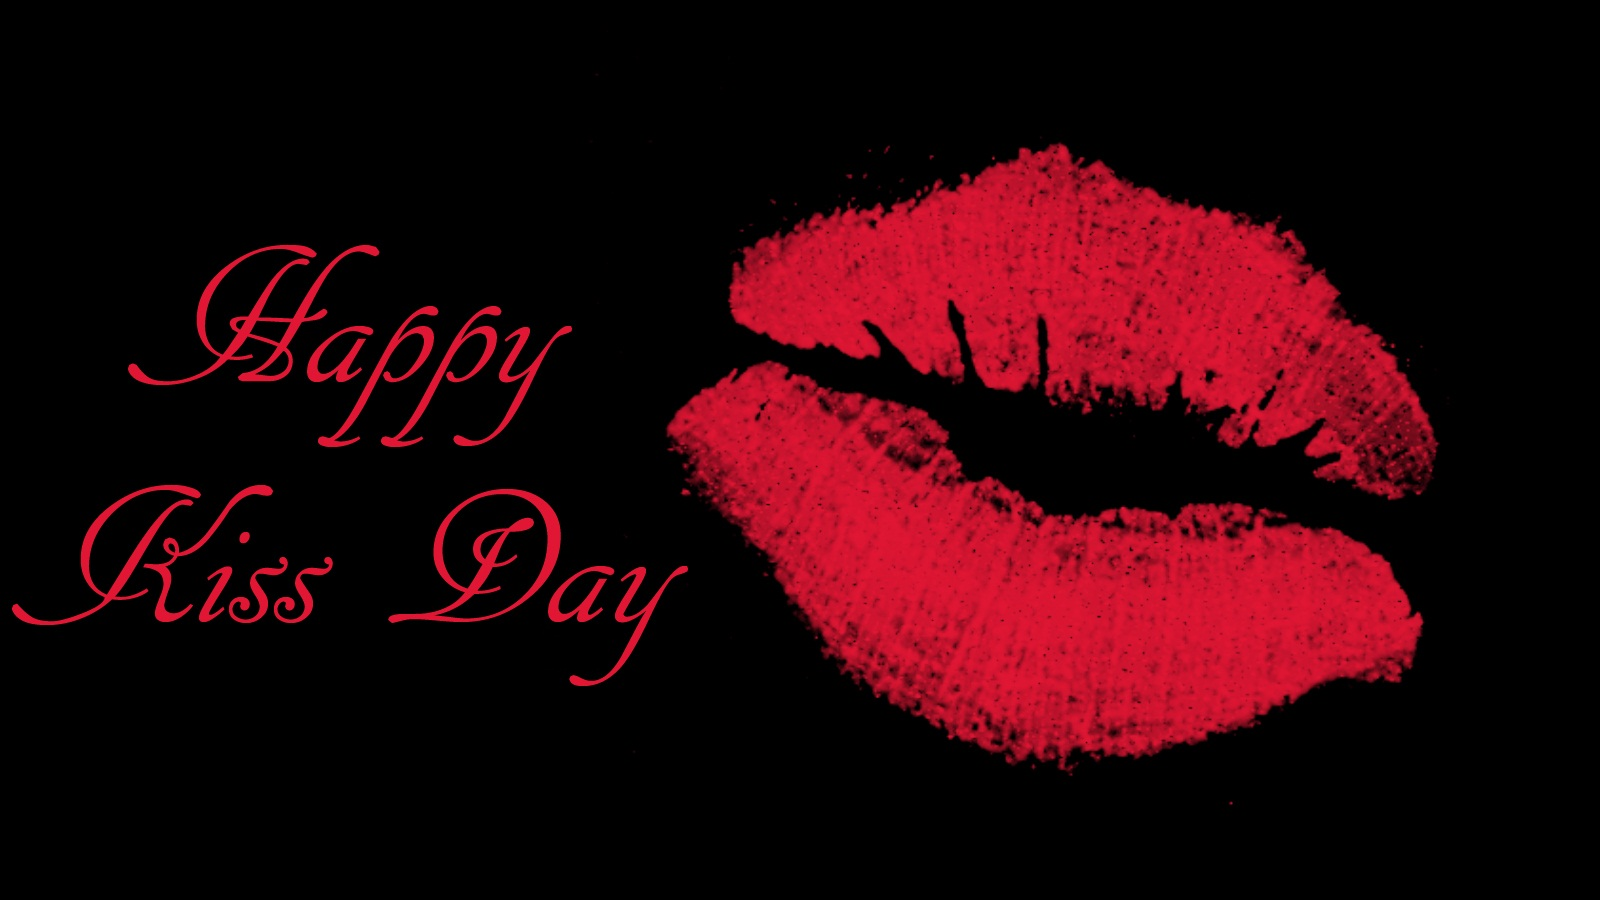 happy-kiss-day-beautiful-lips-images